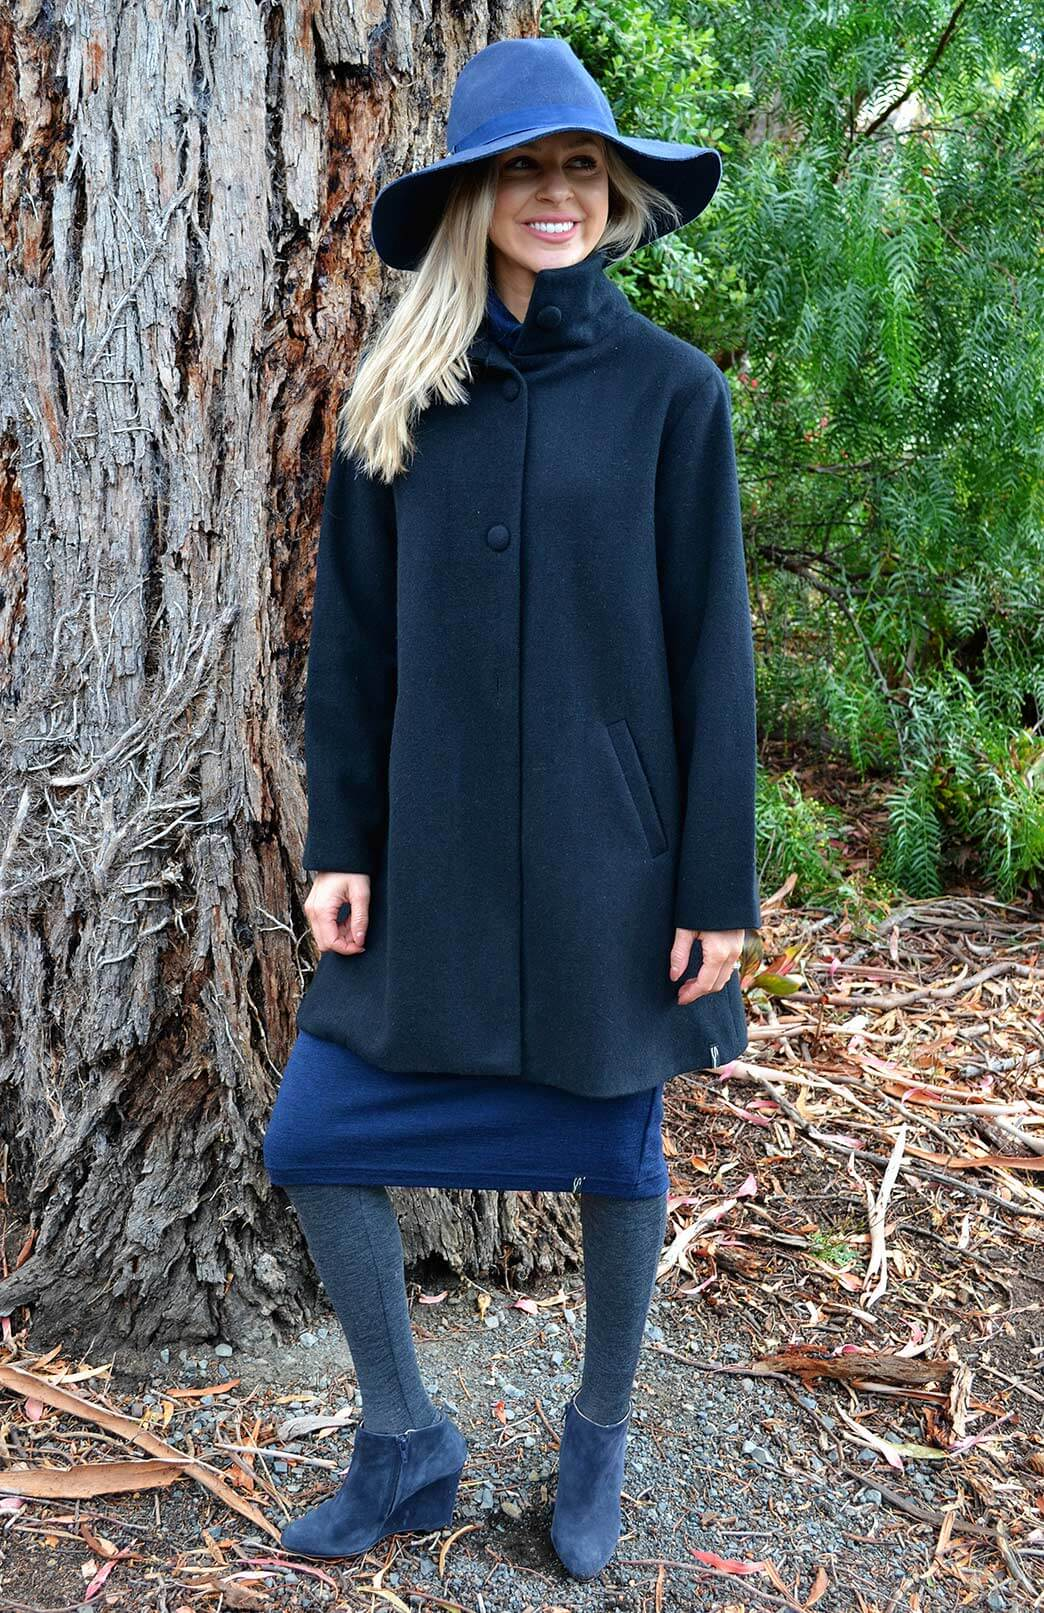 Long Coat - Black - Women's Black Superfine Merino Wool Long Winter Coat with buttons and pockets - Smitten Merino Tasmania Australia